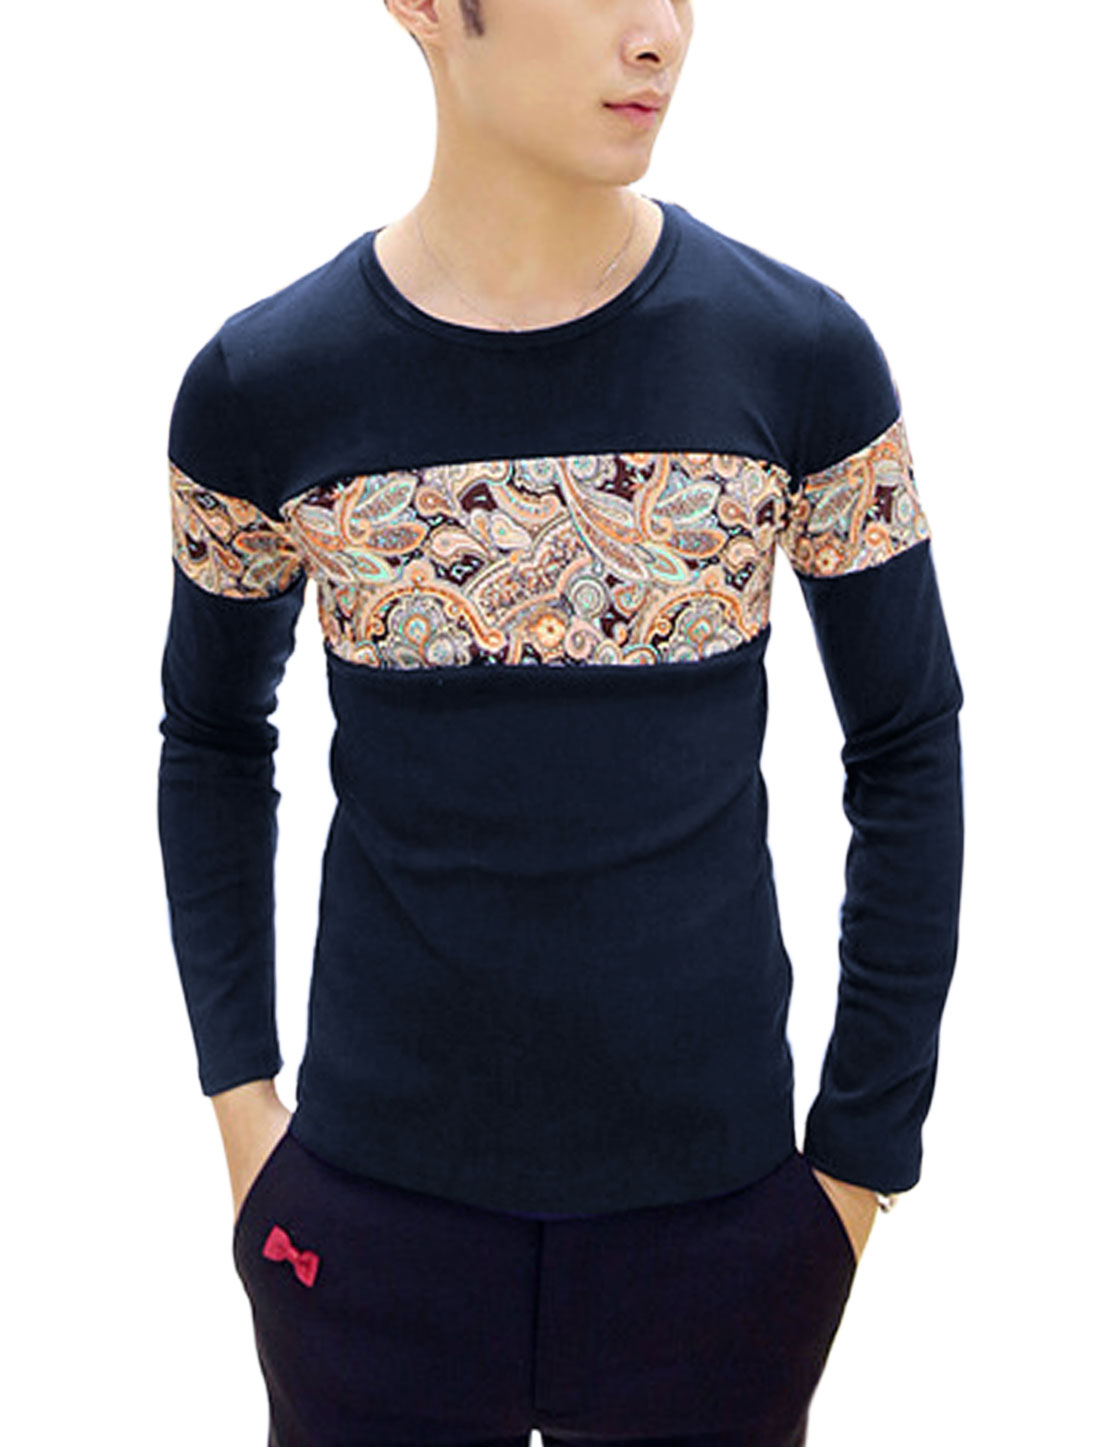 Men Contrast Paisleys Print Pullover Autumn Fit Tee Shirt Navy Blue S